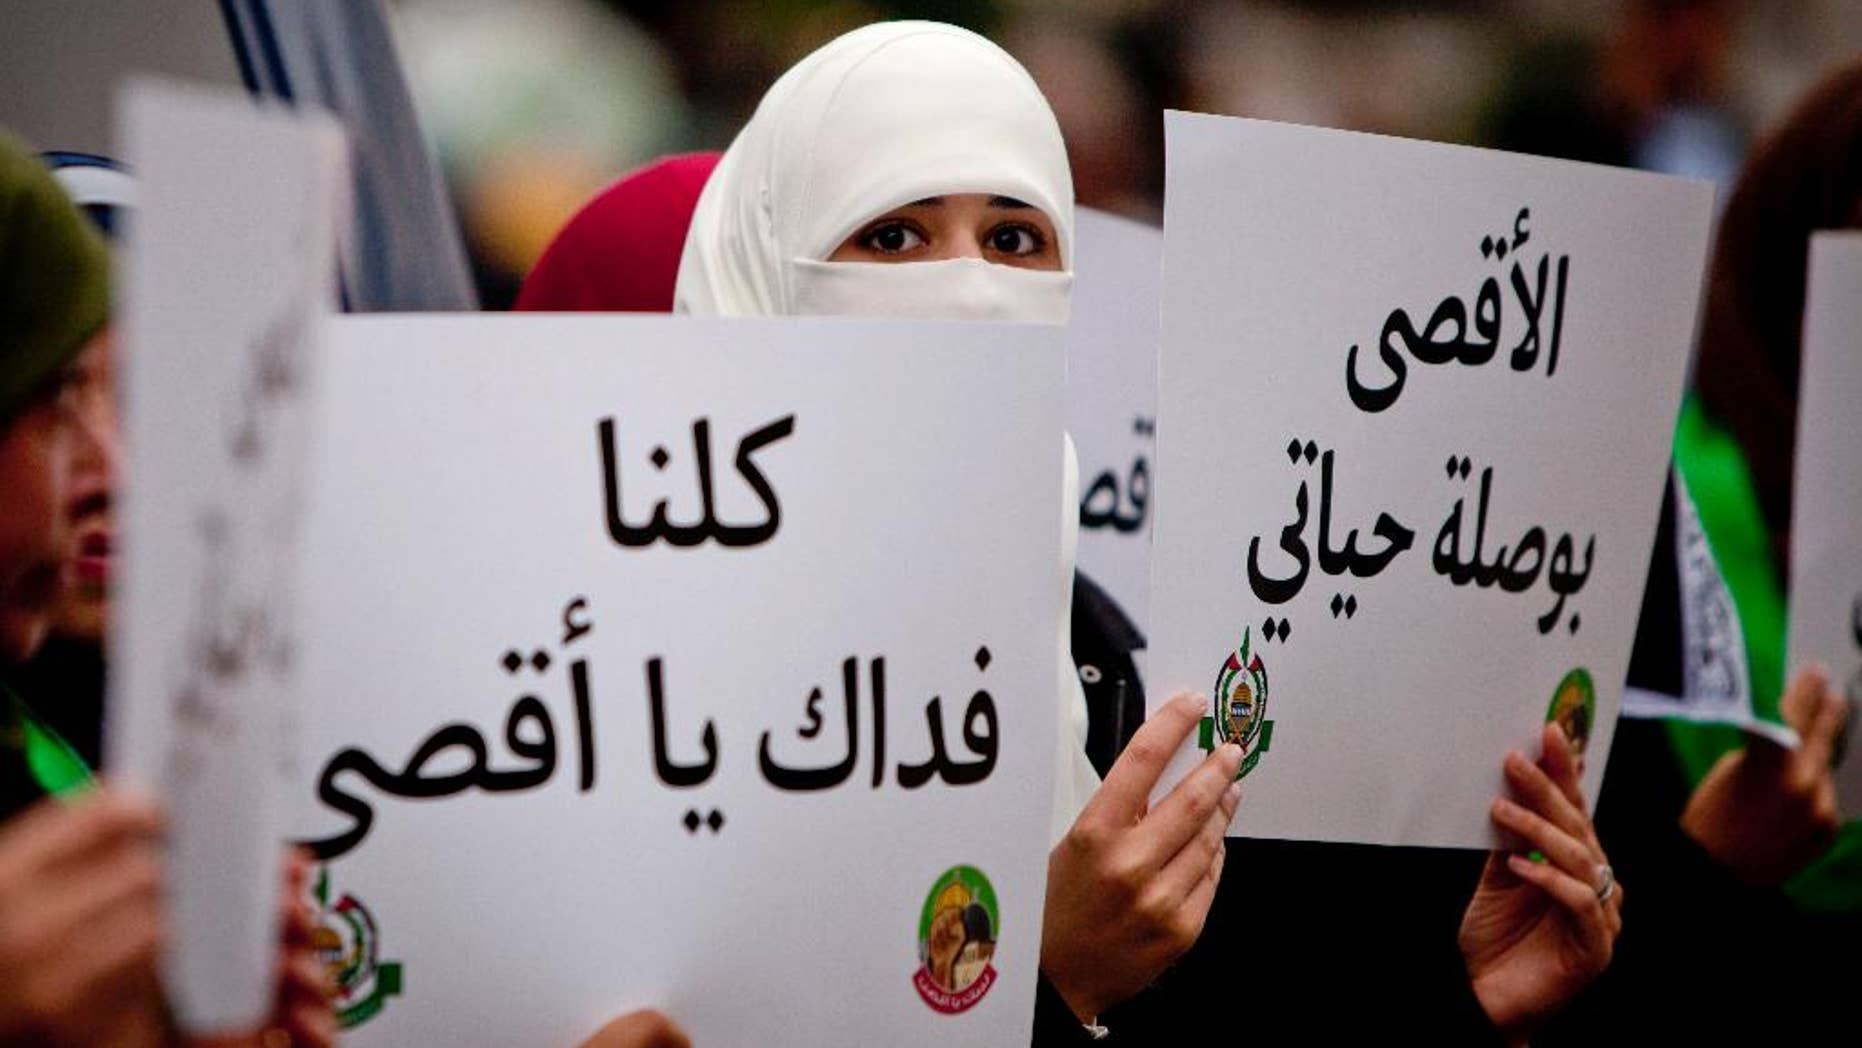 """Palestinian supporters of the Islamist movement Hamas, hold a placards with the slogan written in Arabic, """"we are all your defenders Al-Aqsa,"""", and """"Al-Aqsa is the compass for my life"""" during a protest against recent Israeli restrictions at the Al-Aqsa Mosque, in the West Bank City of Ramallah, Friday, Oct. 17, 2014. (AP Photo/Majdi Mohammed)"""